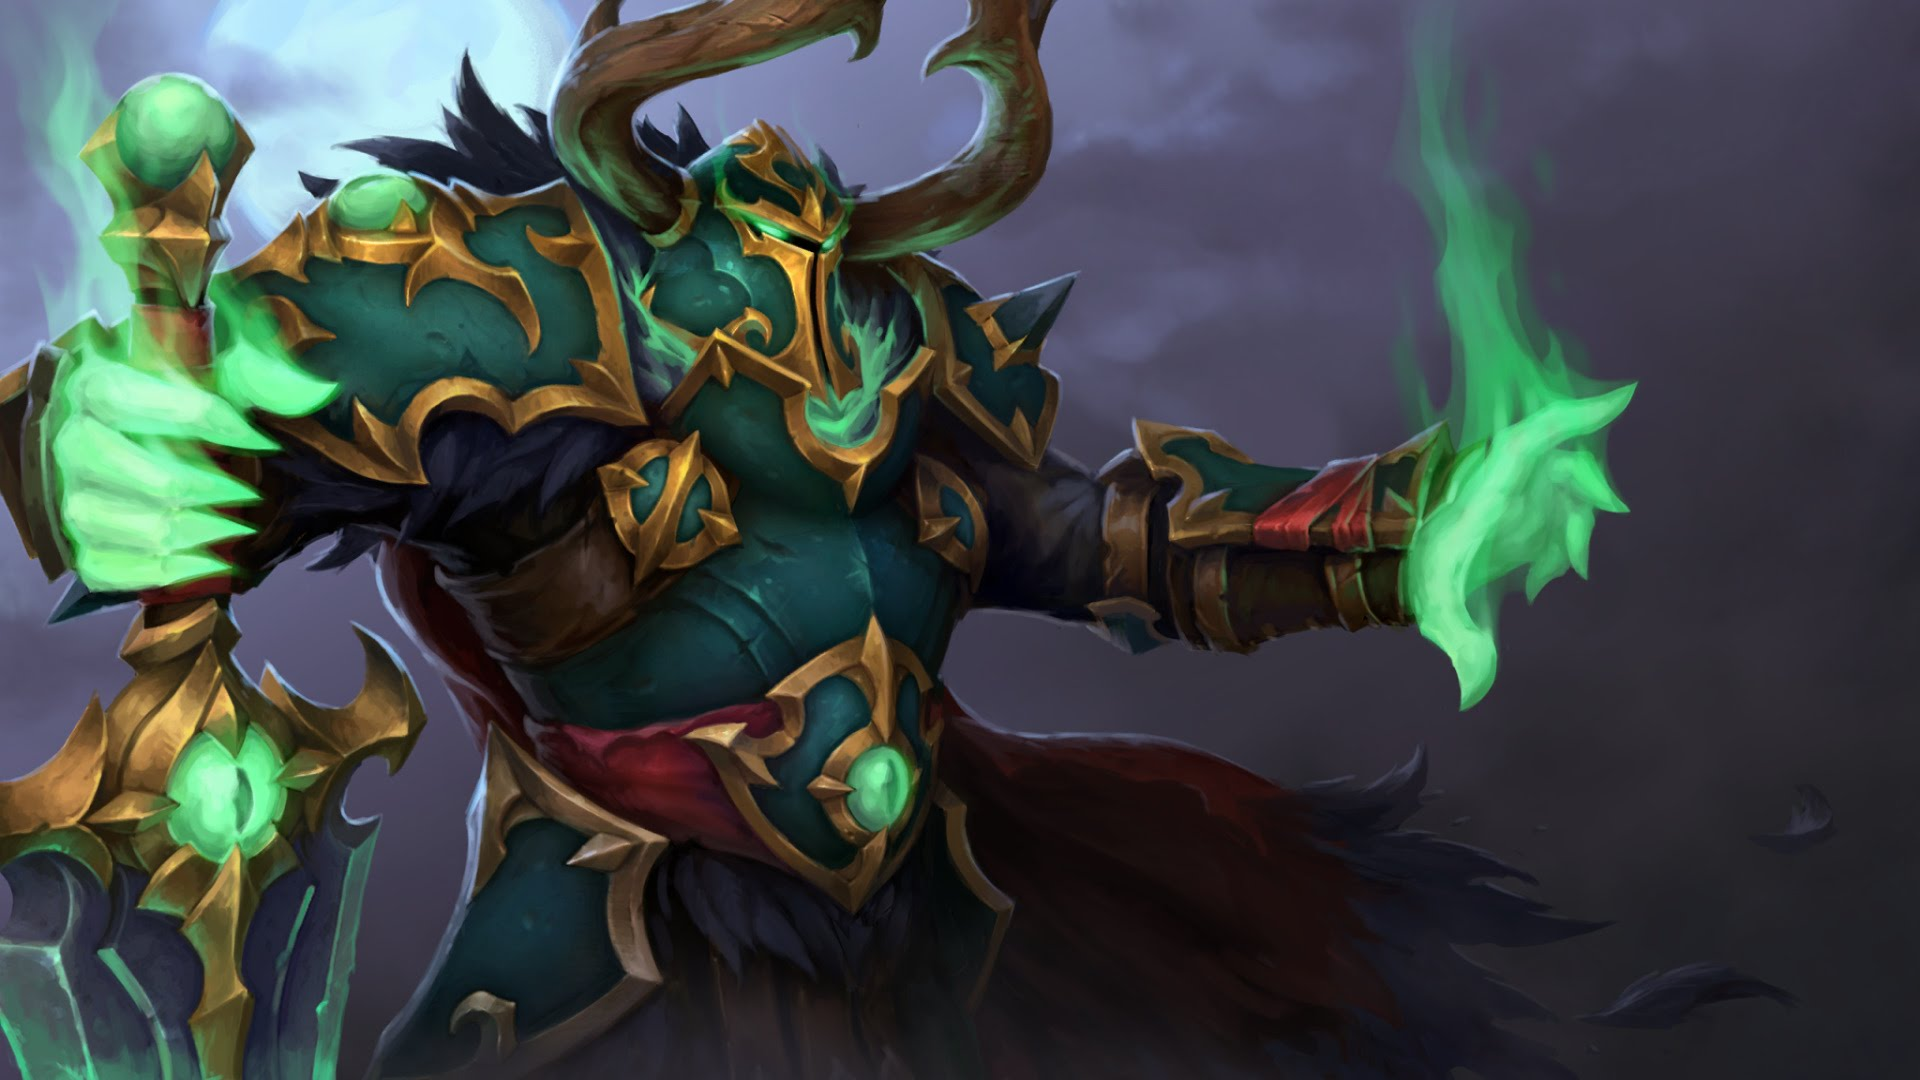 Dota2 : Wraith King widescreen wallpapers